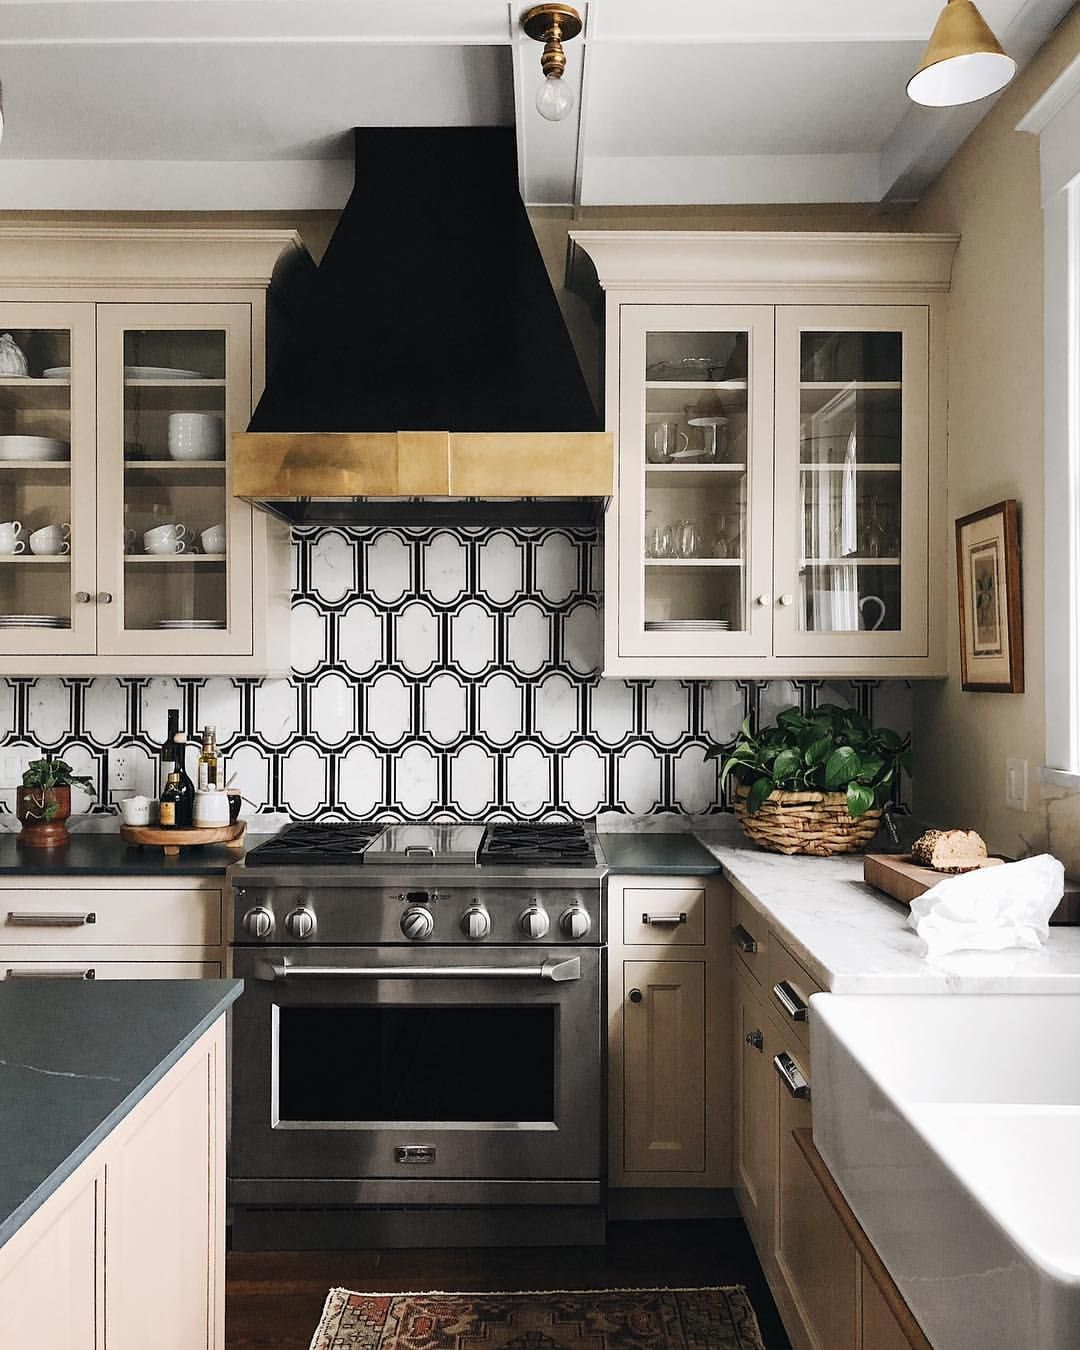 Black And Gold Kitchen Backsplash Tile And Stainless Steel Oven